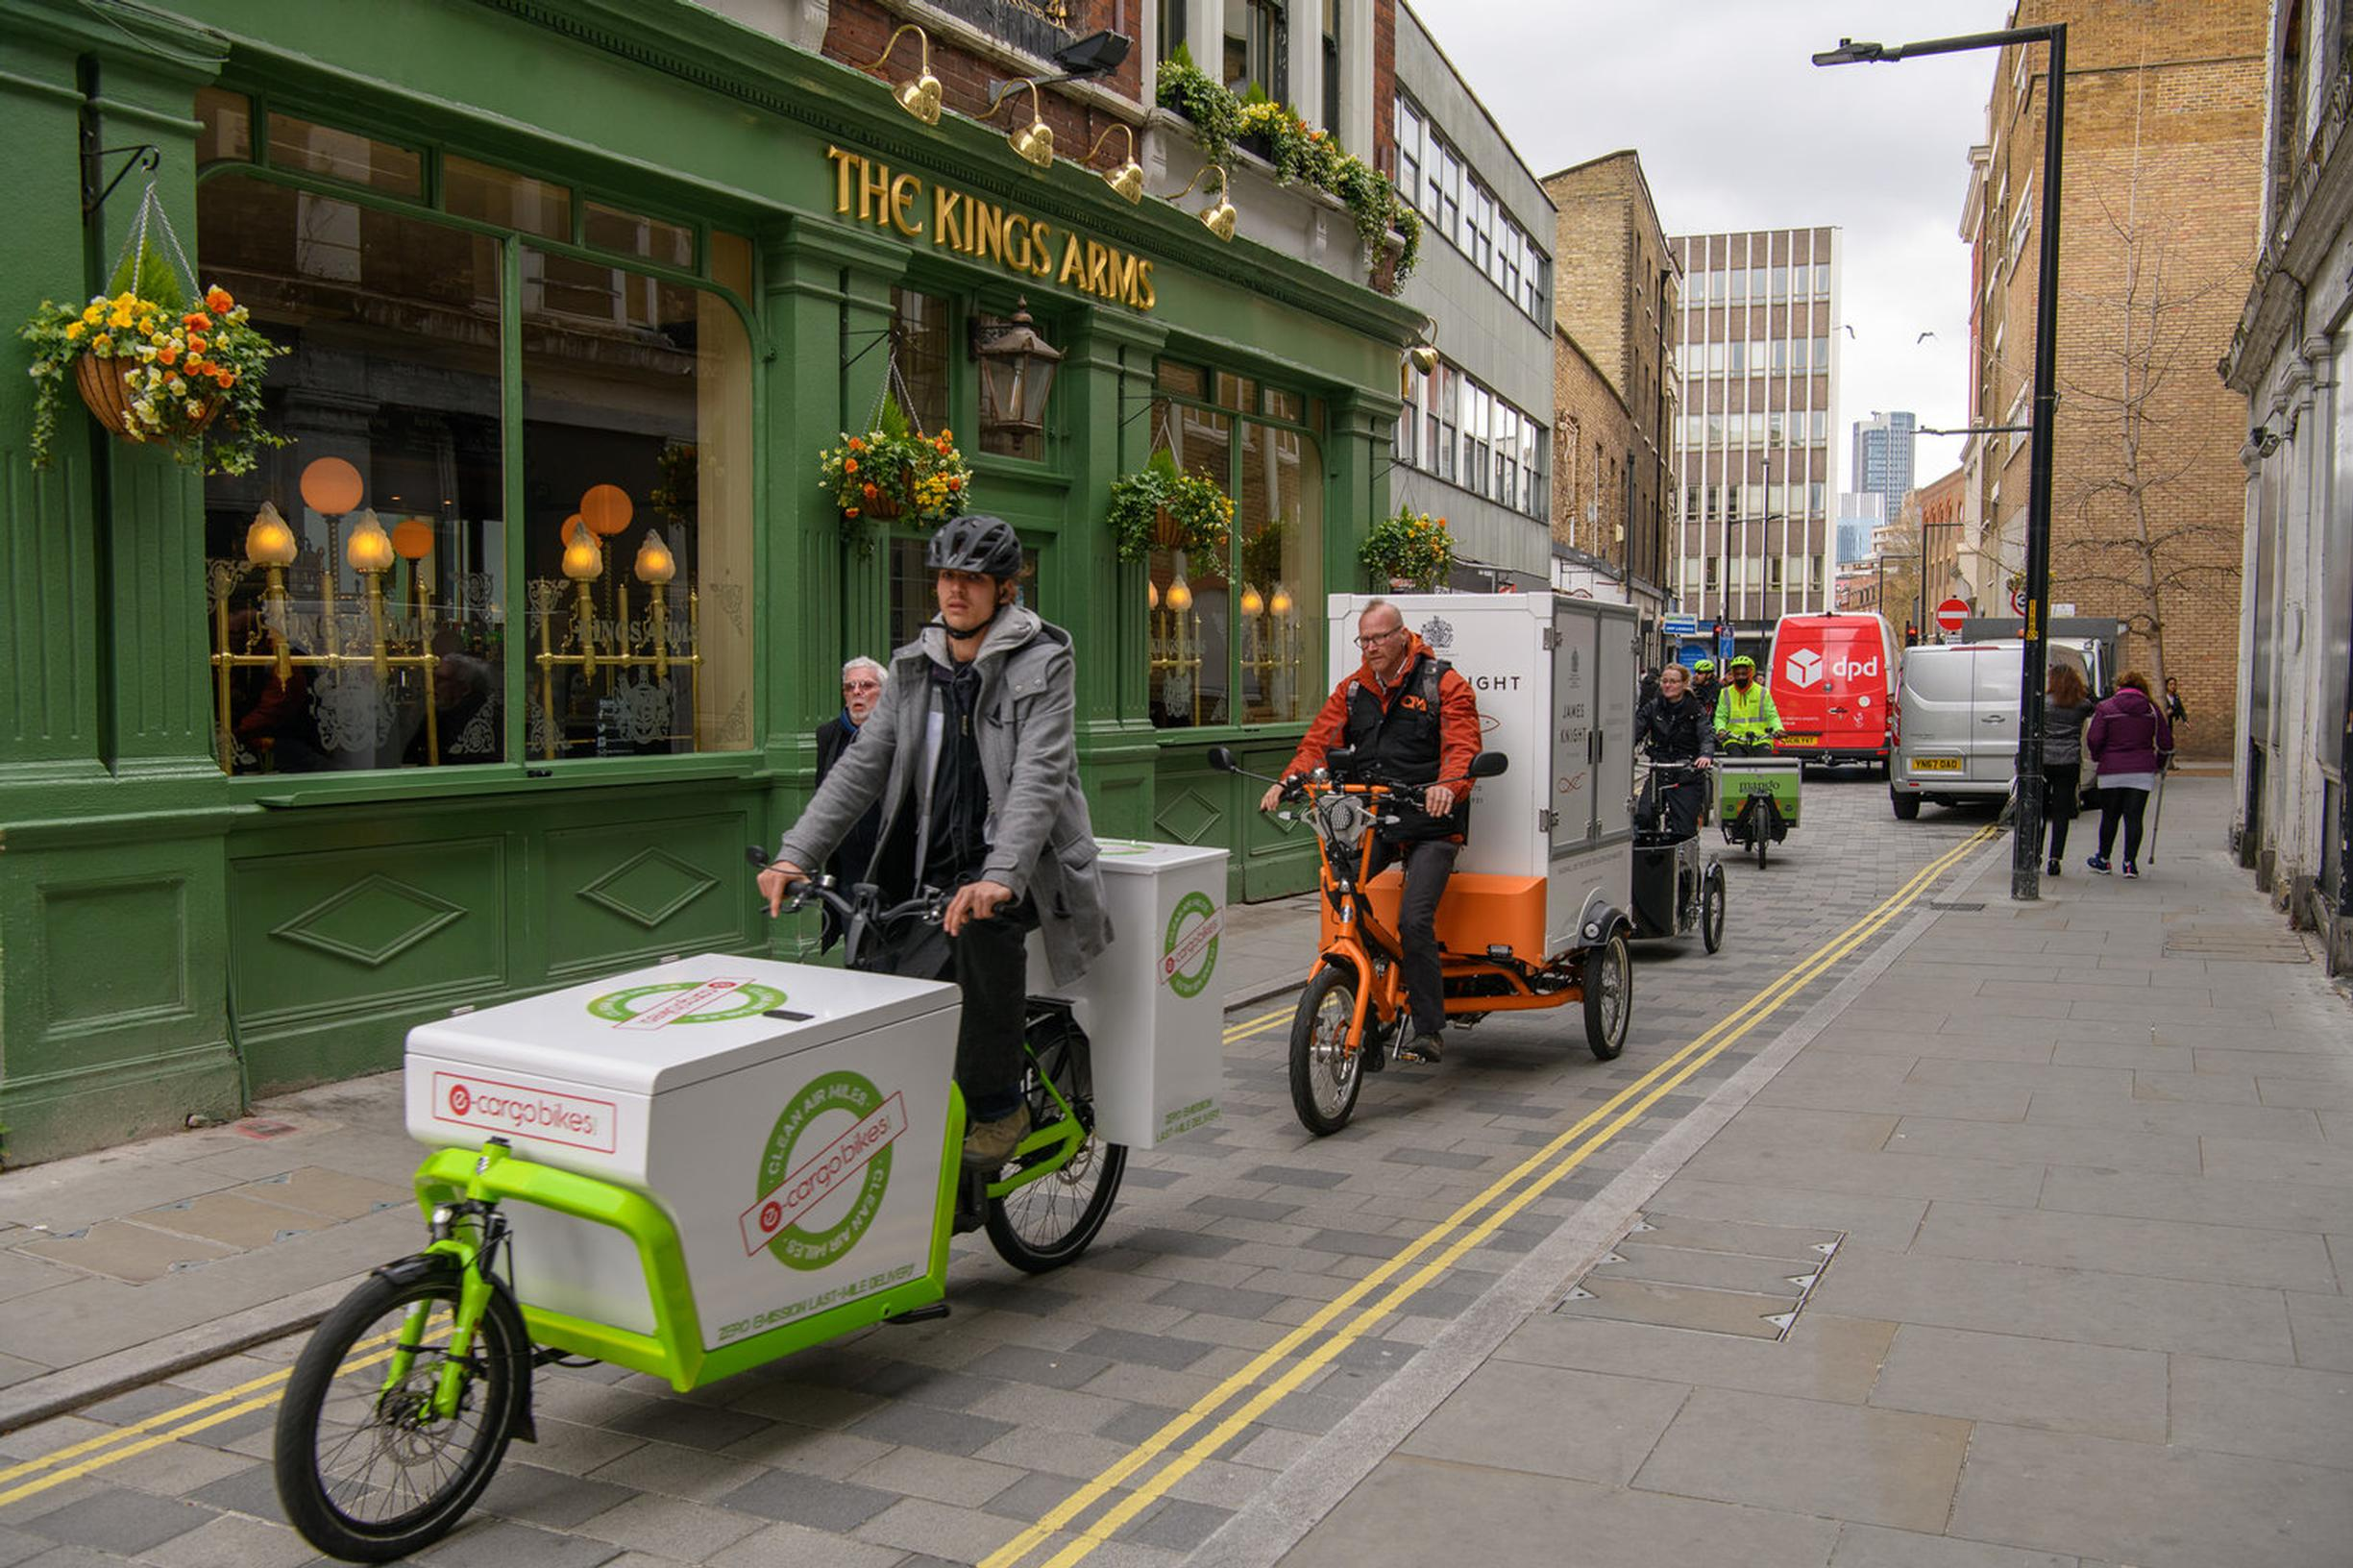 Cargo bikes will become a more common sight in London